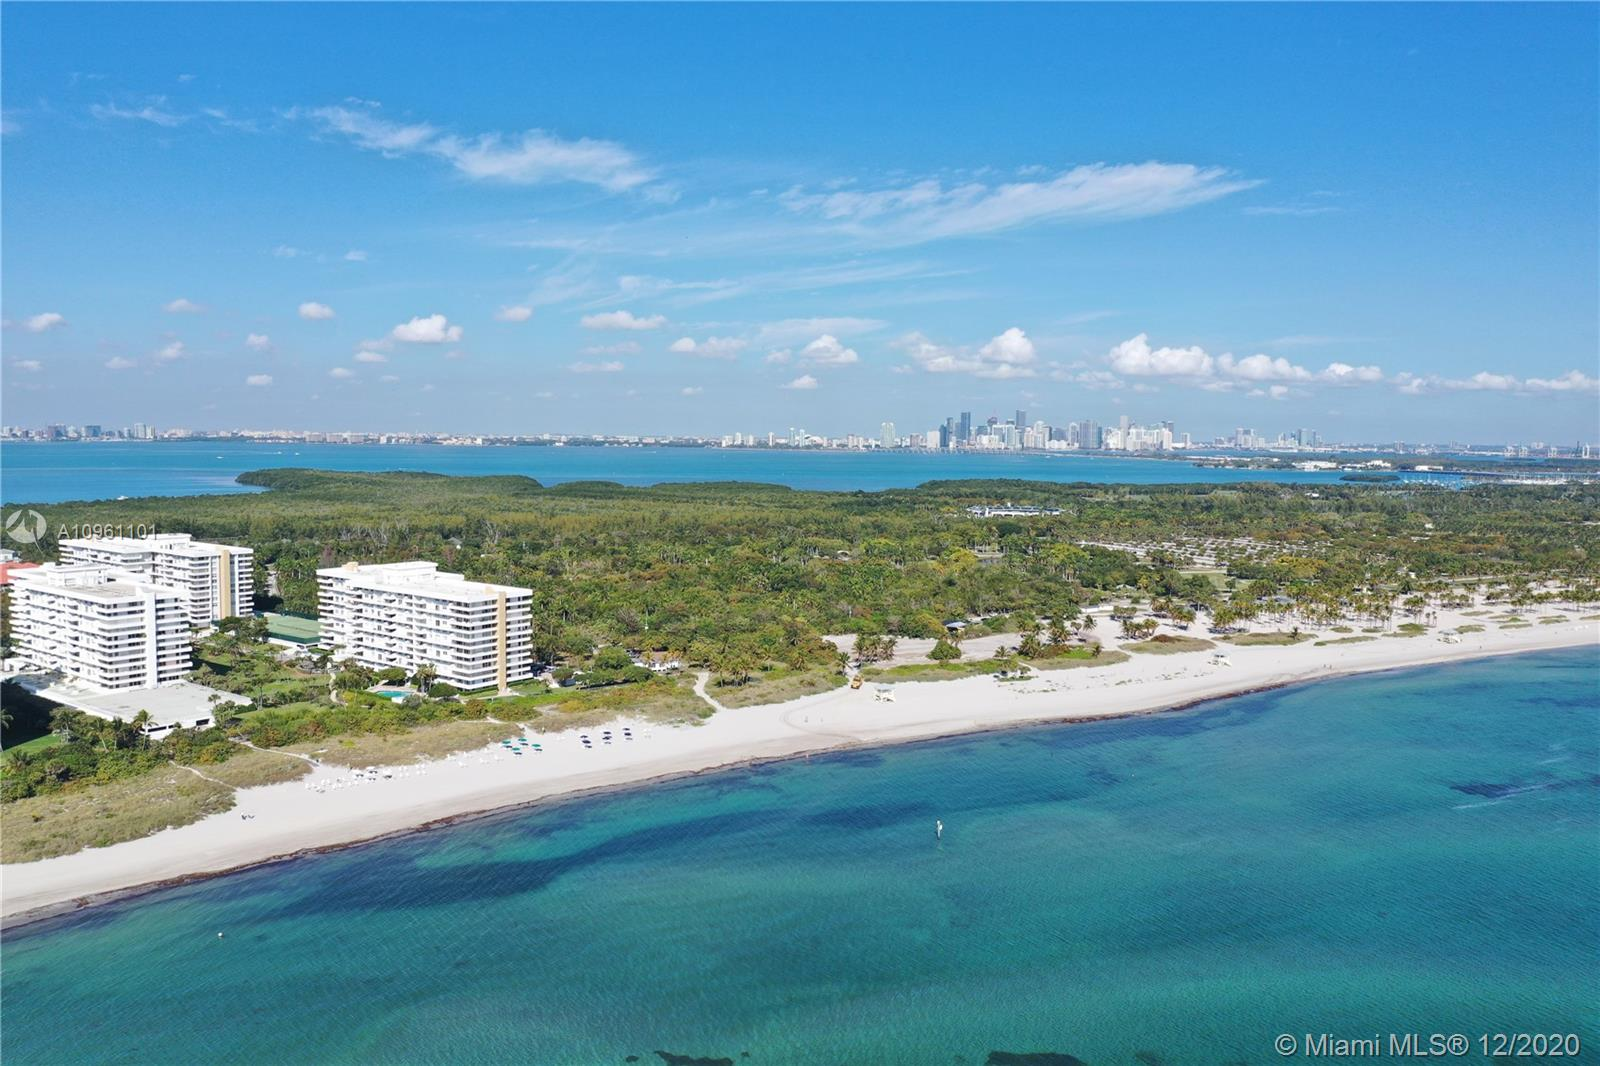 Commodore Club West #1002 - 155 Ocean Lane Dr #1002, Key Biscayne, FL 33149